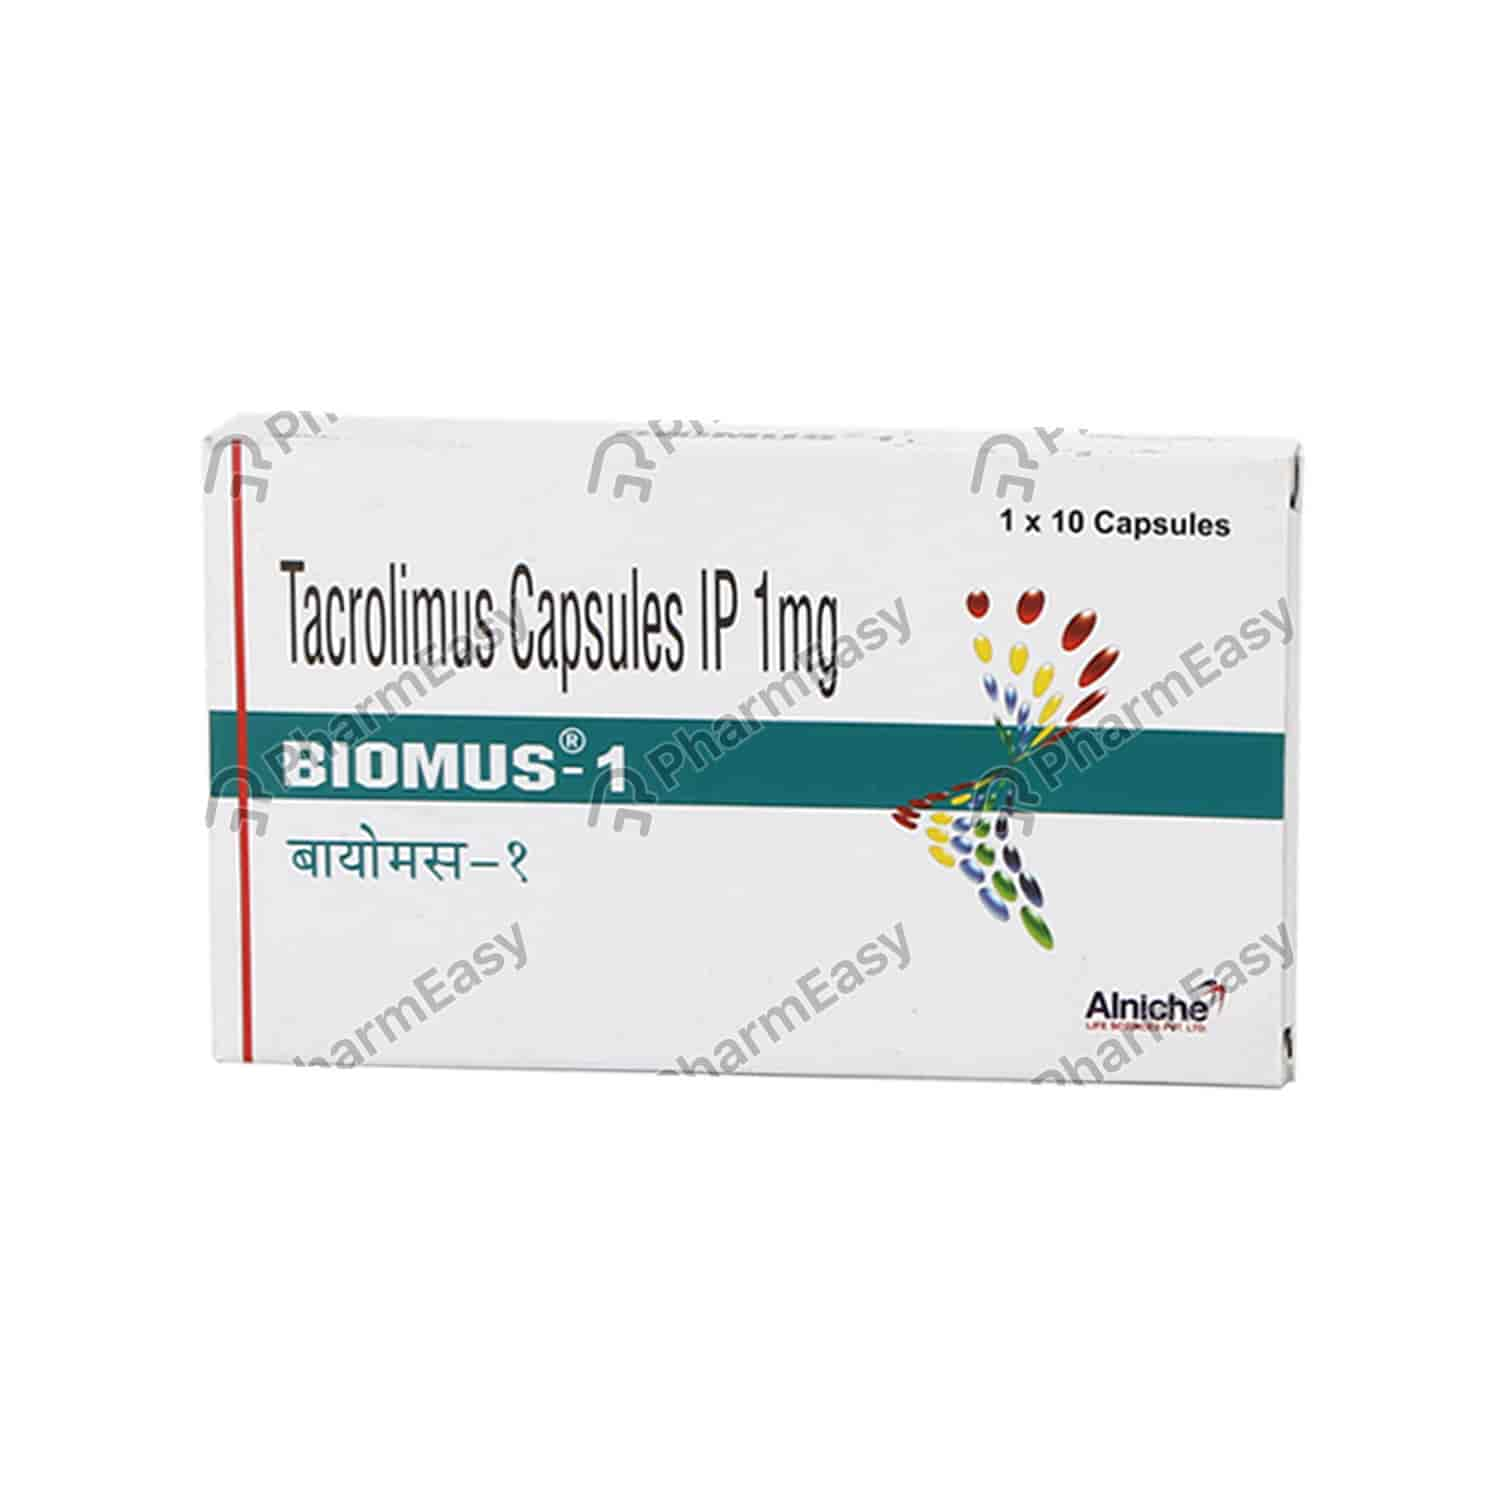 Biomus 1mg Strip Of 10 Capsules